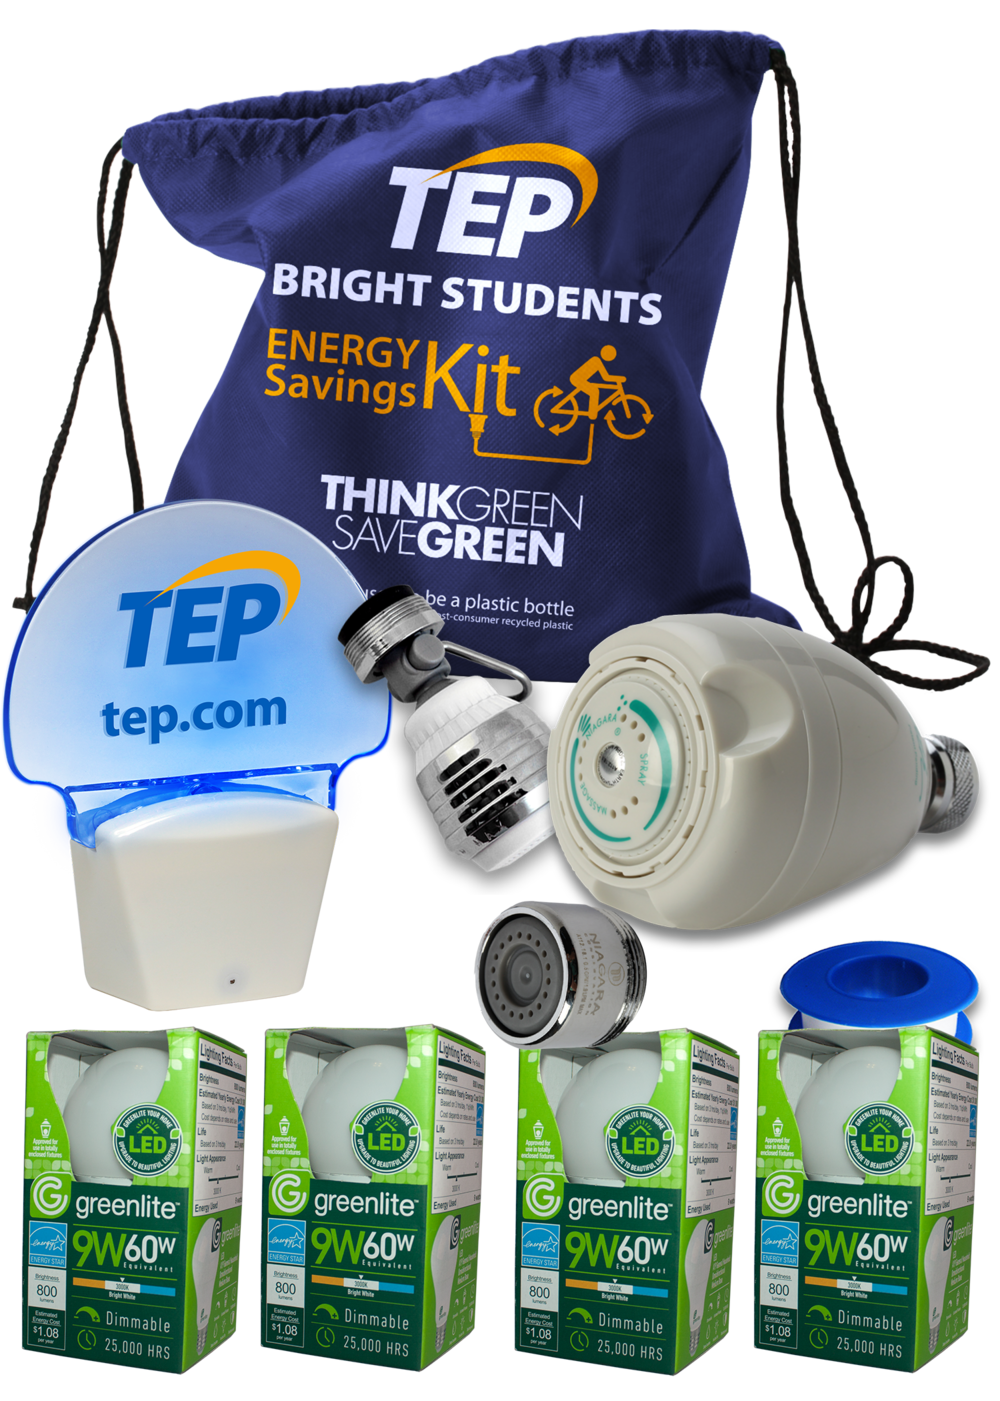 Each student receives an Energy Savings Kit.